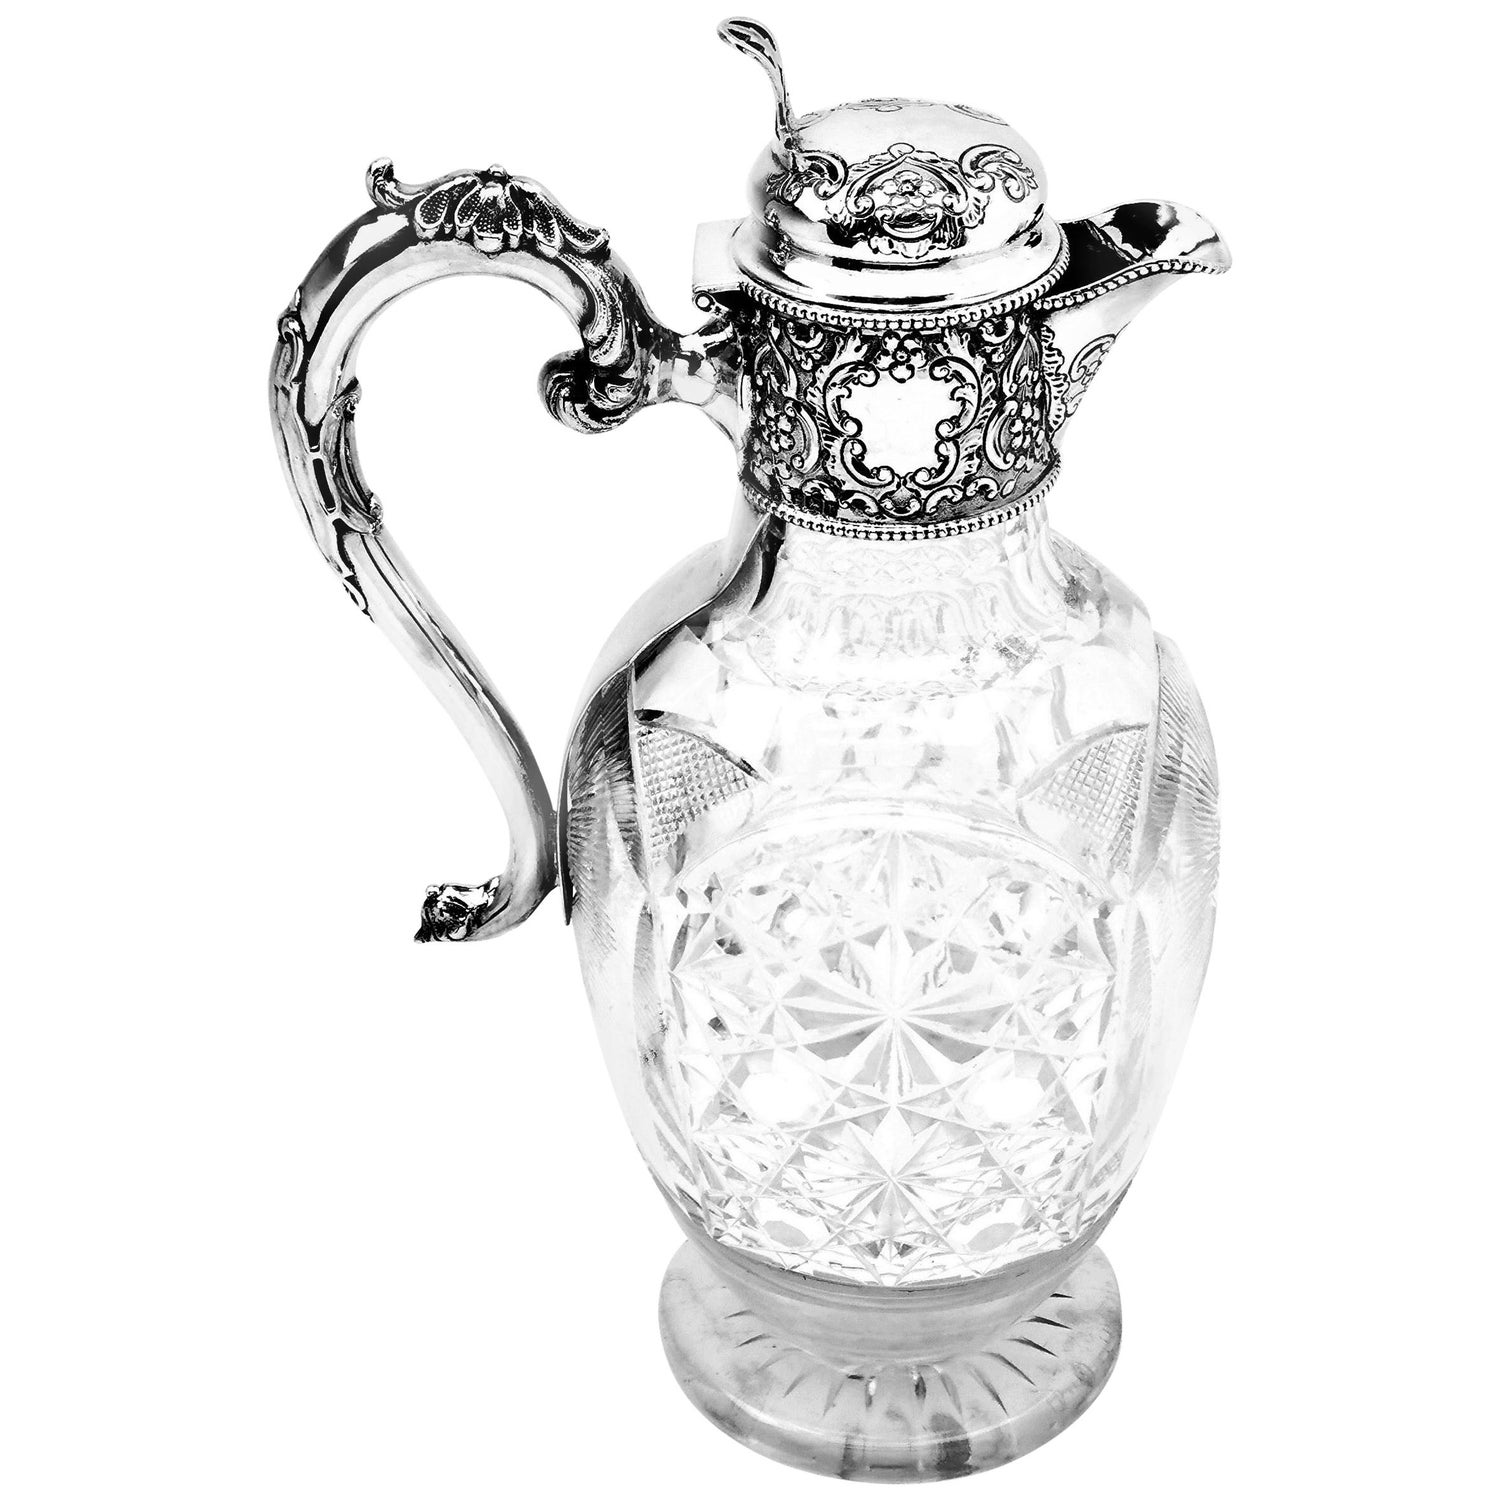 Antique Solid Silver & Cut Glass Claret Jug Wine Decanter, 1909